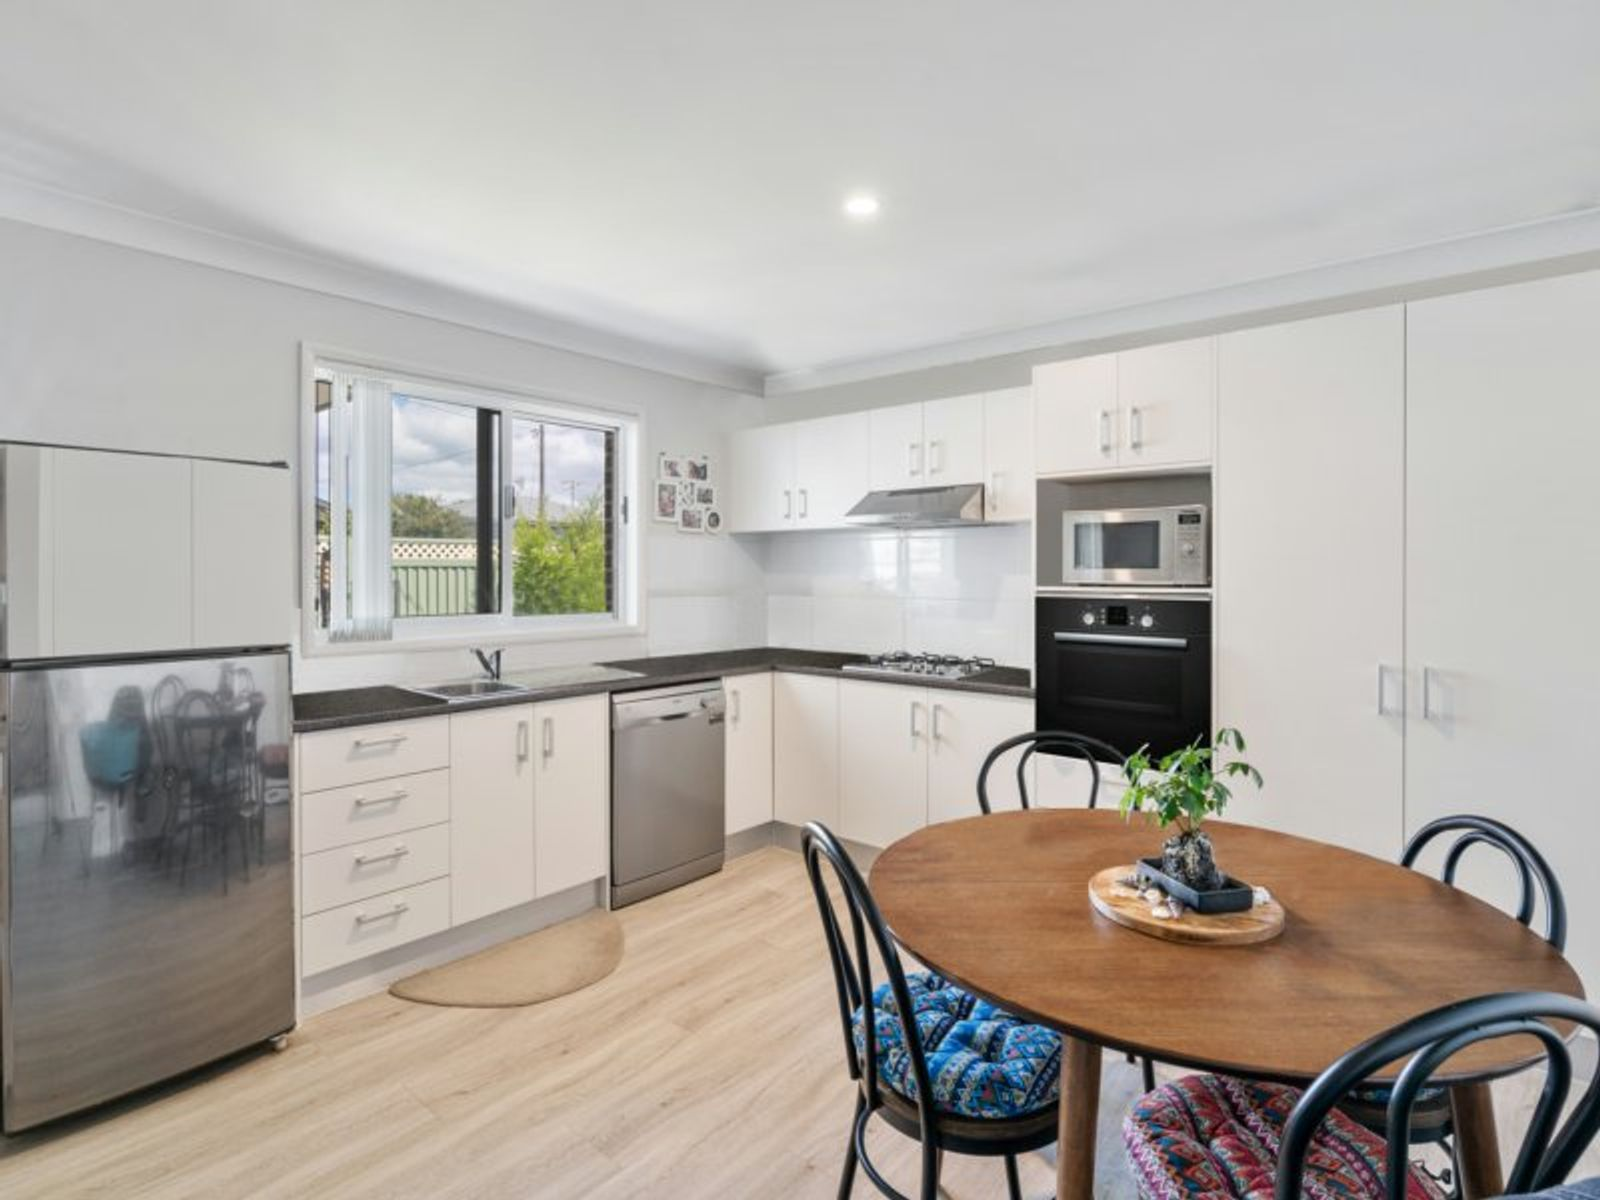 28 Merrendale Avenue, Gorokan, NSW 2263